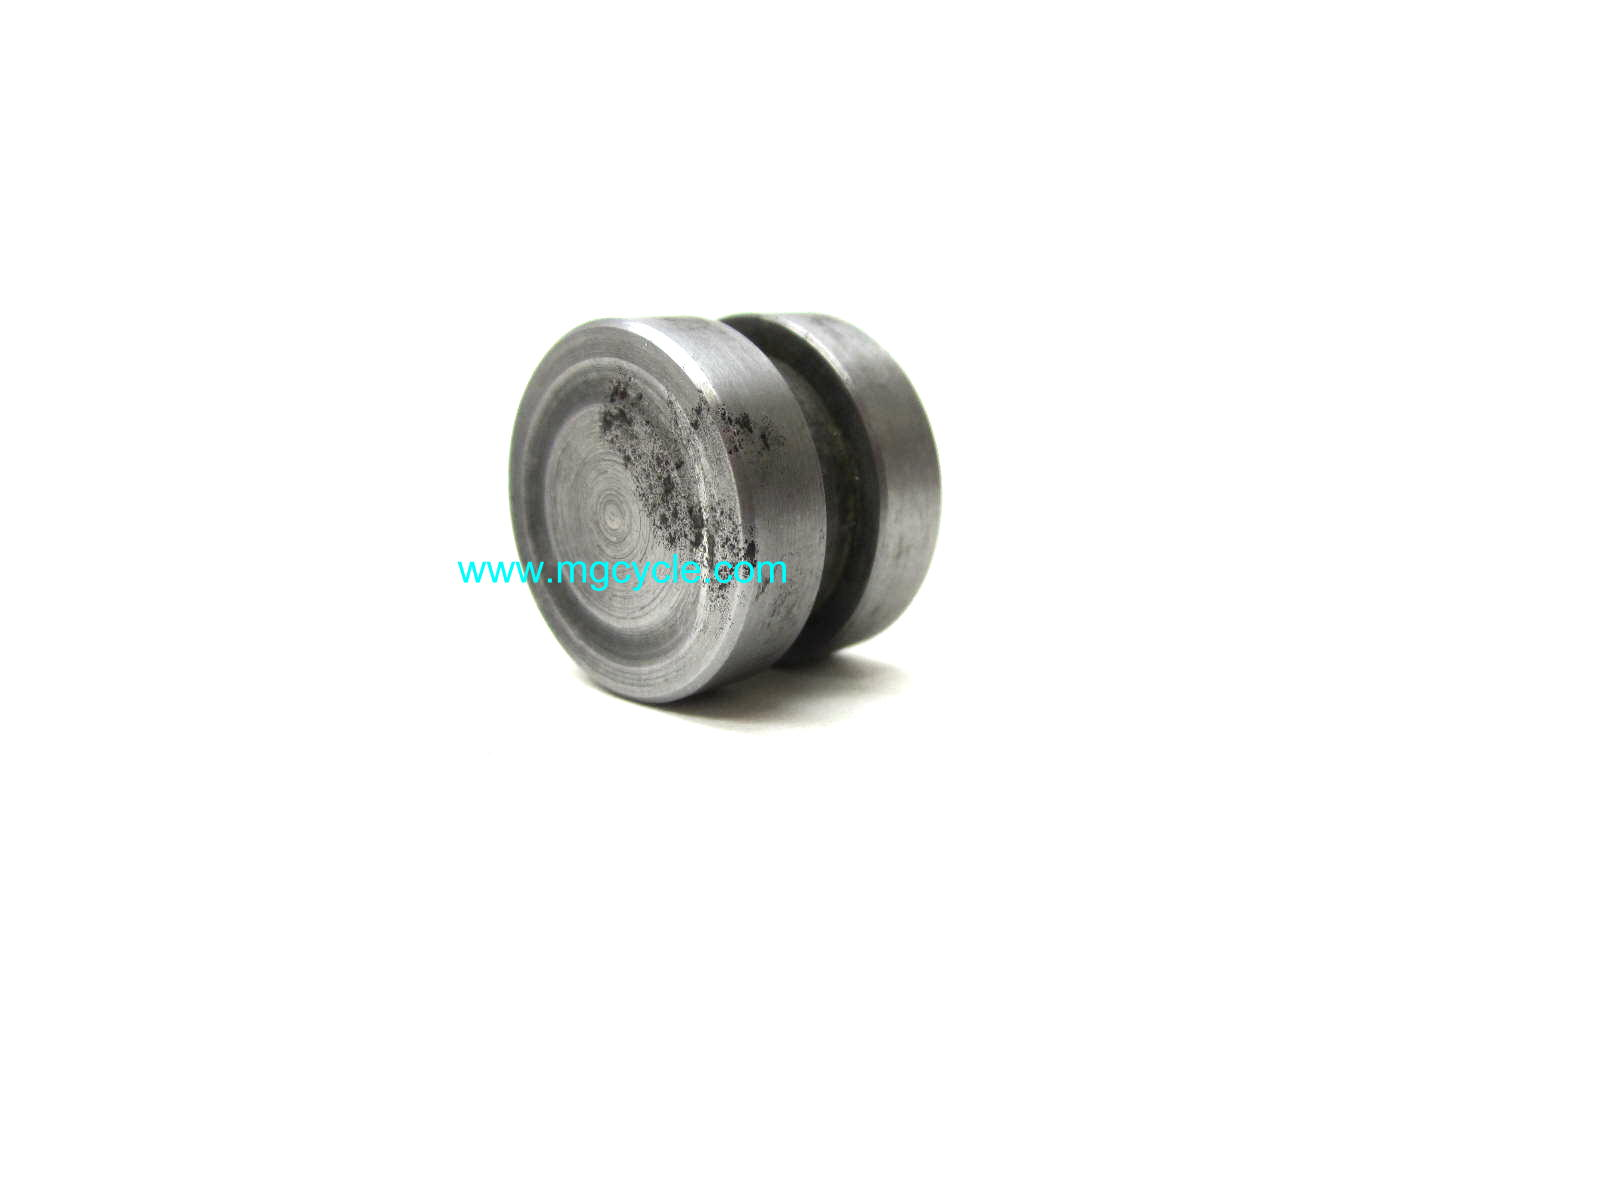 clutch outer body V700